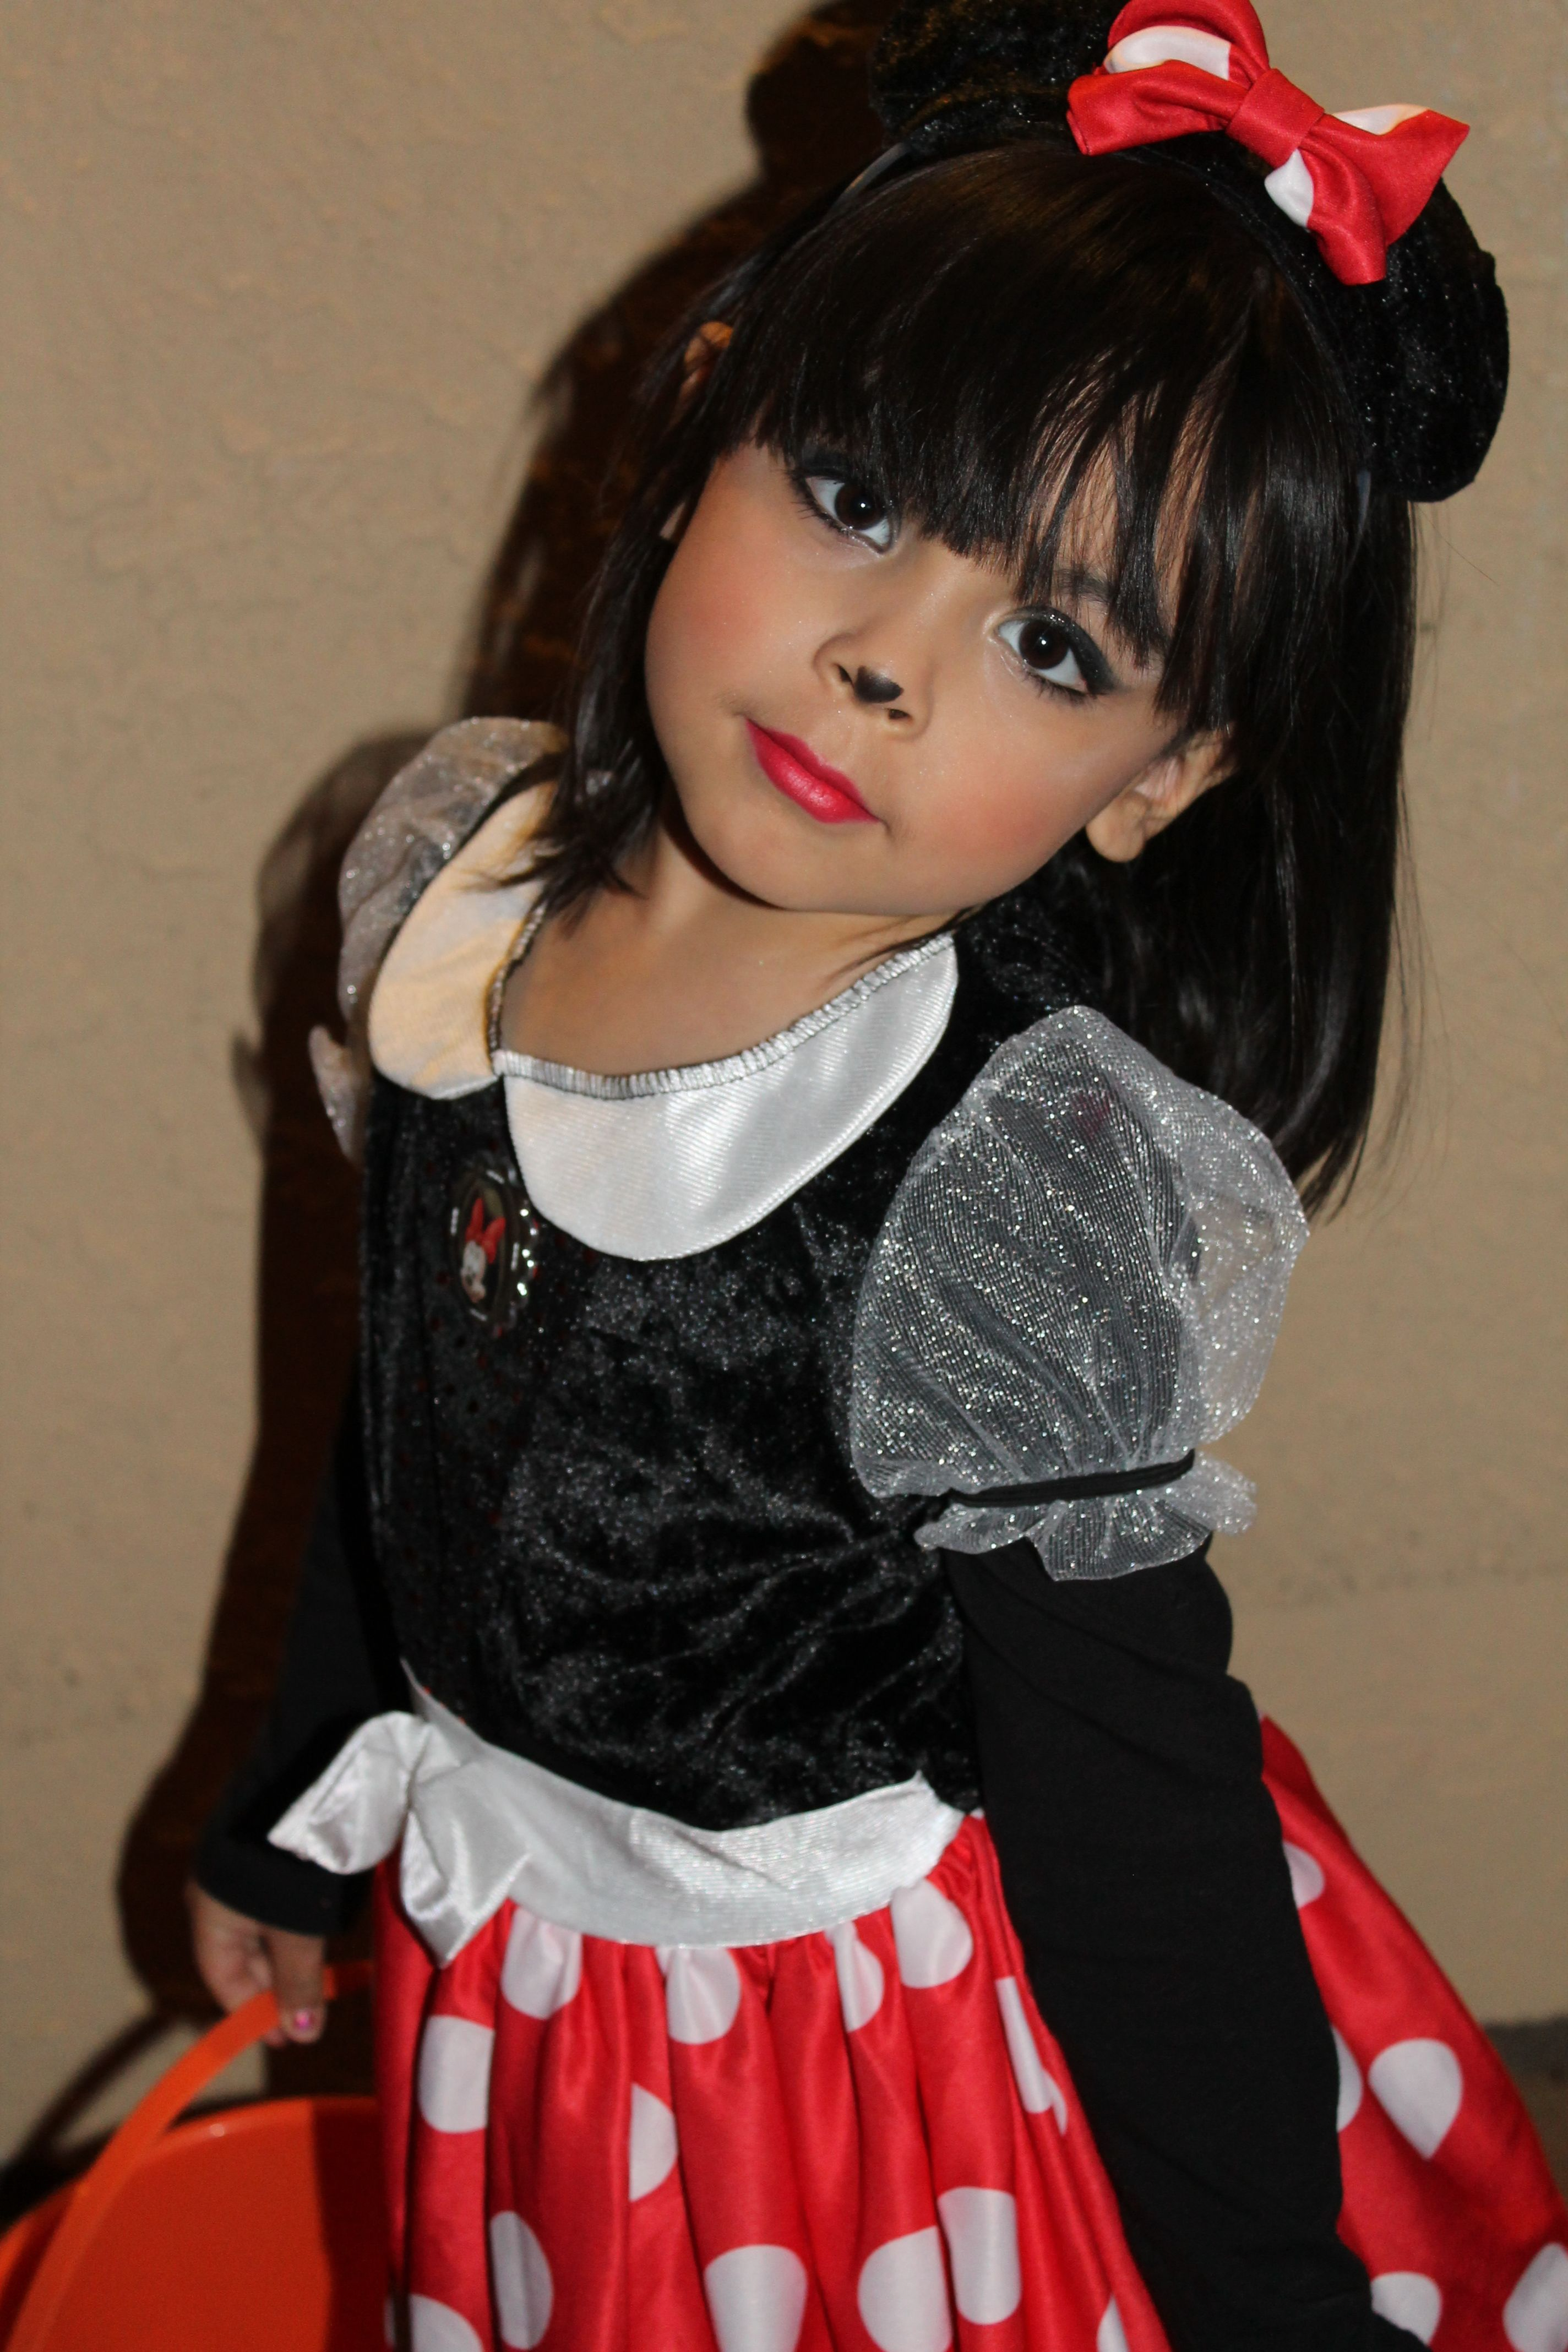 Minnie Mouse Costume Plus Make Up! Very Easy To Get This Look ! | The Look For Little Girls ...